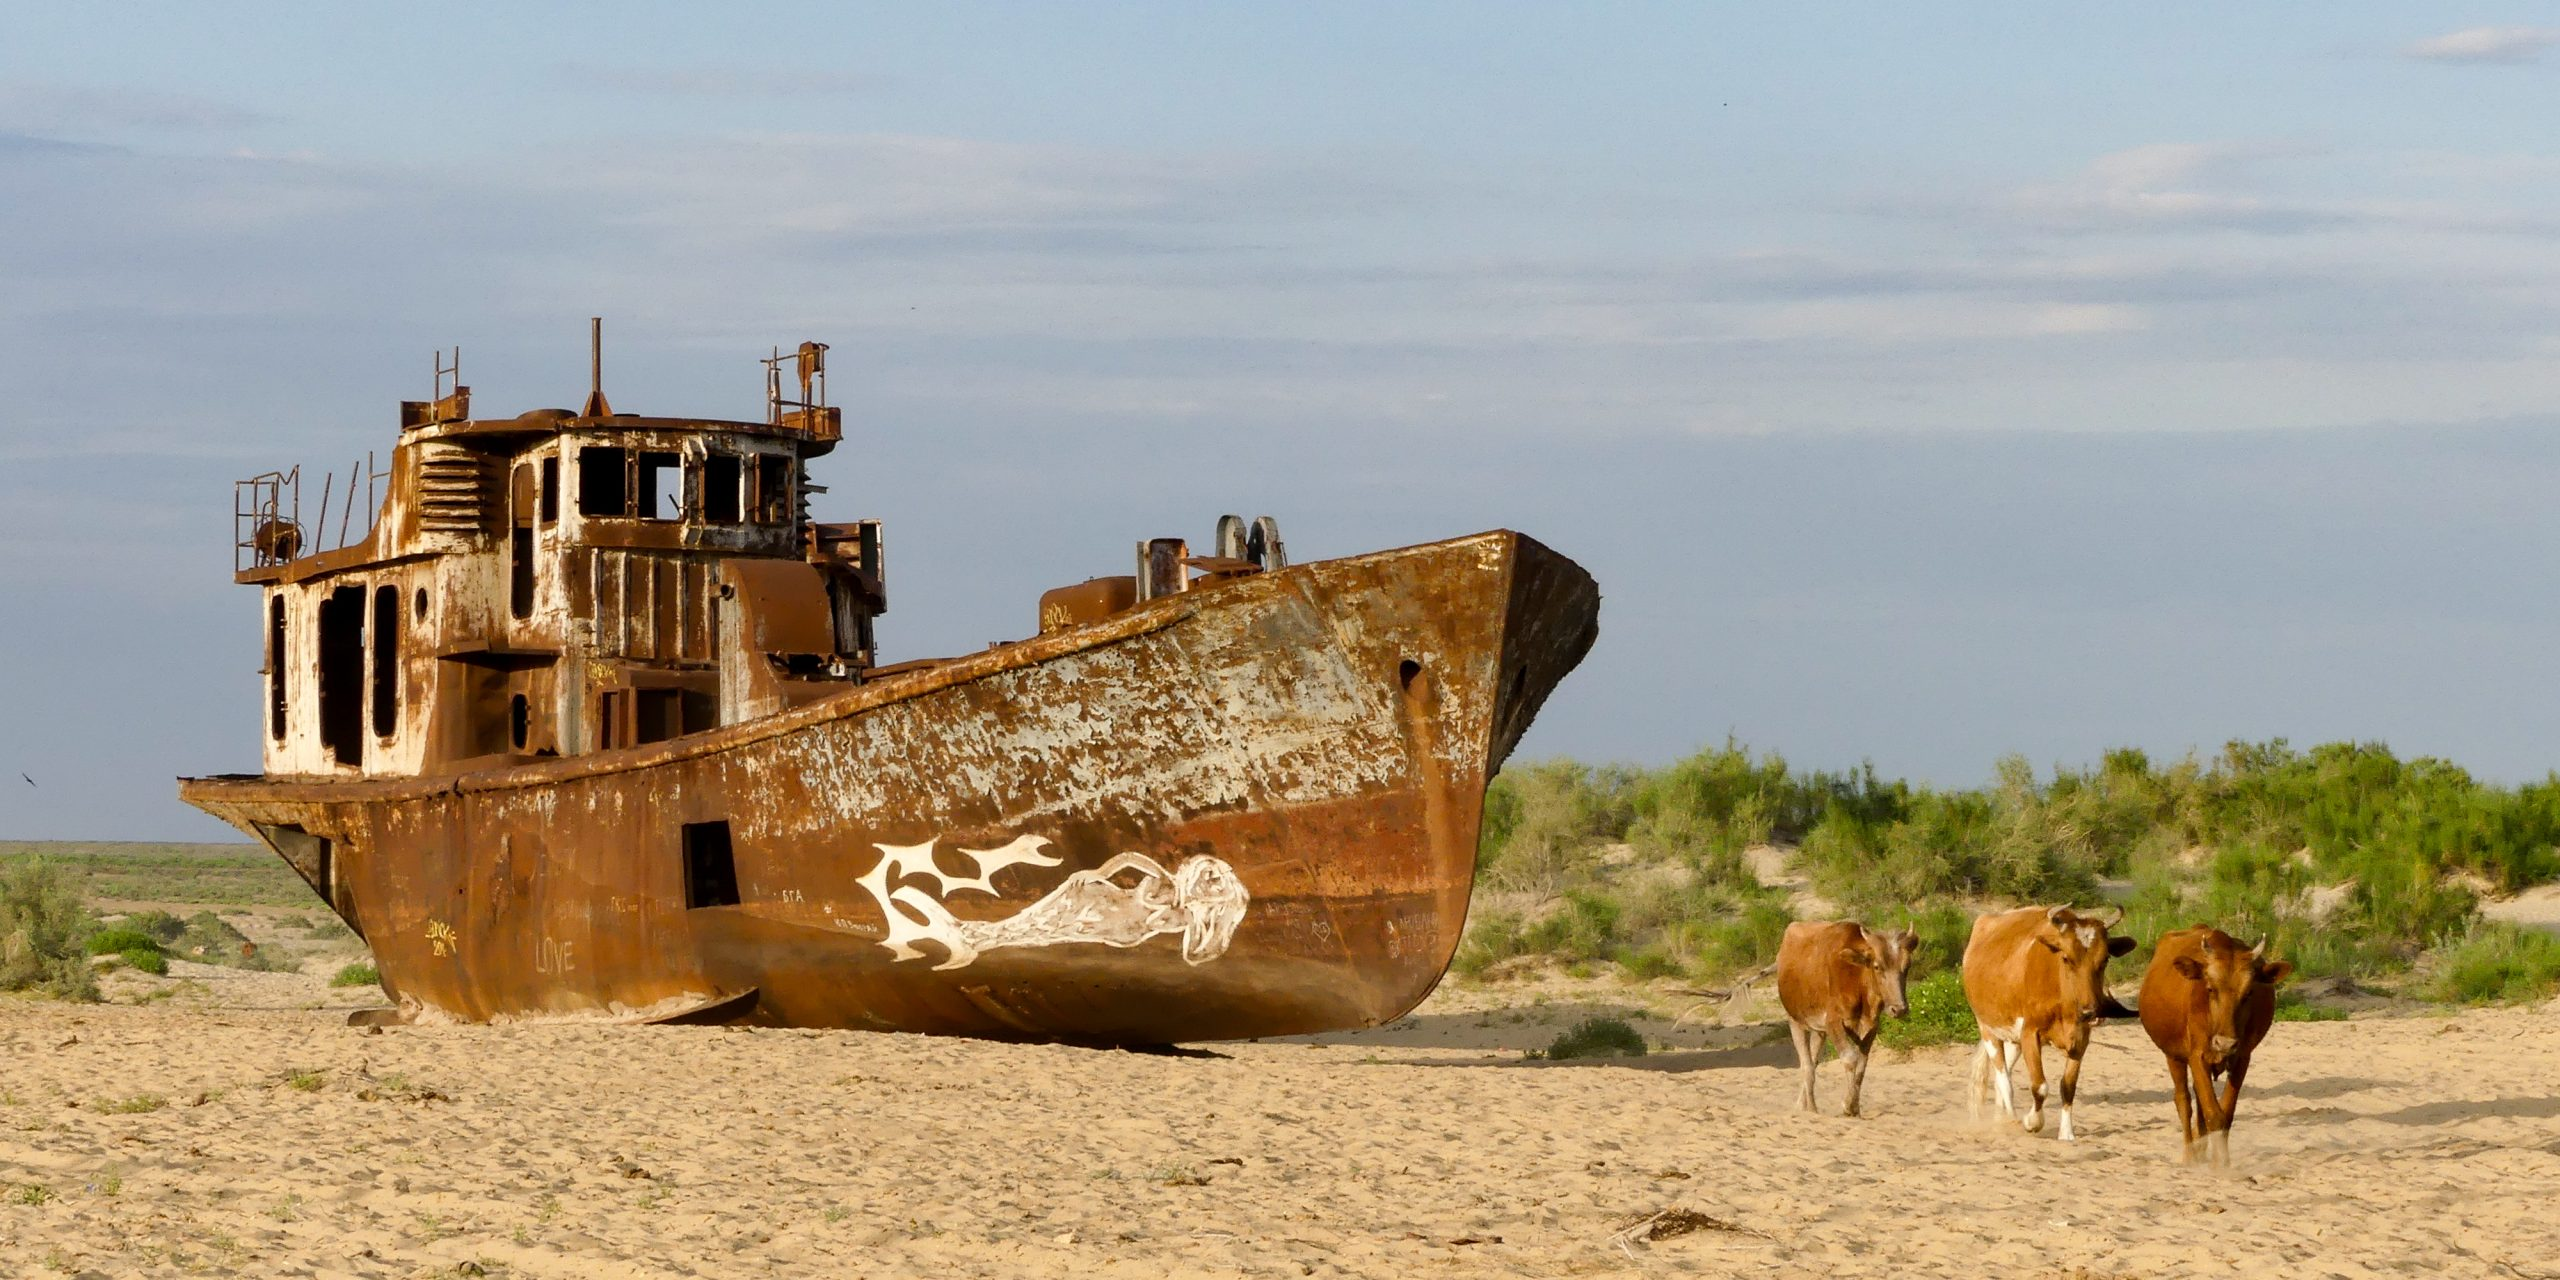 Cows walking in front of an abandoned ship in the Aral Sea, Uzbekistan